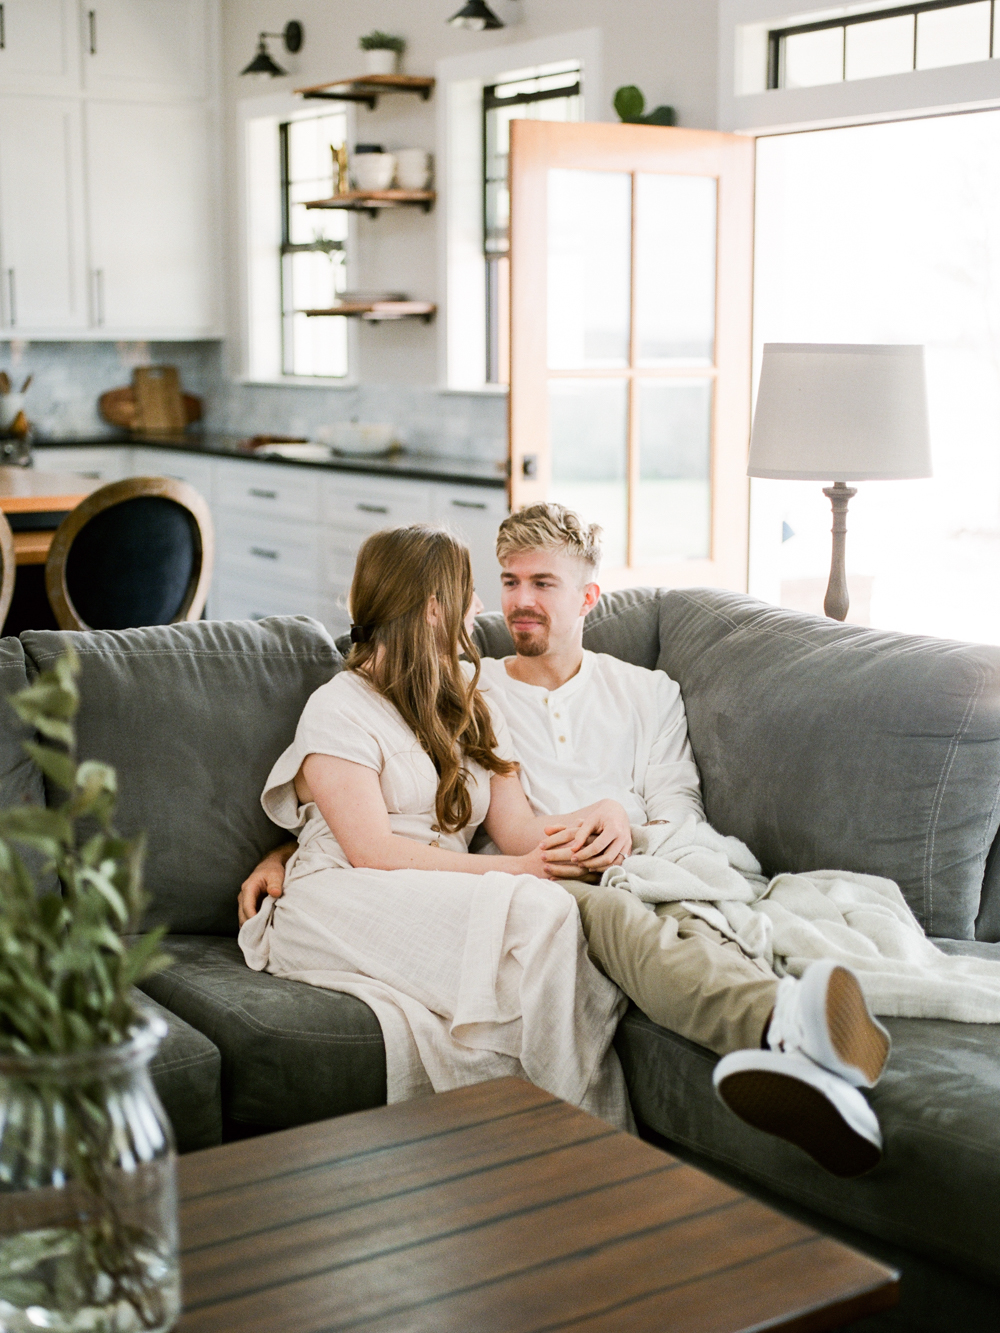 at home engagement session - Christine Gosch - featured on Magnolia Rouge - film photographer - elopement and intimate wedding photographer-36.jpg